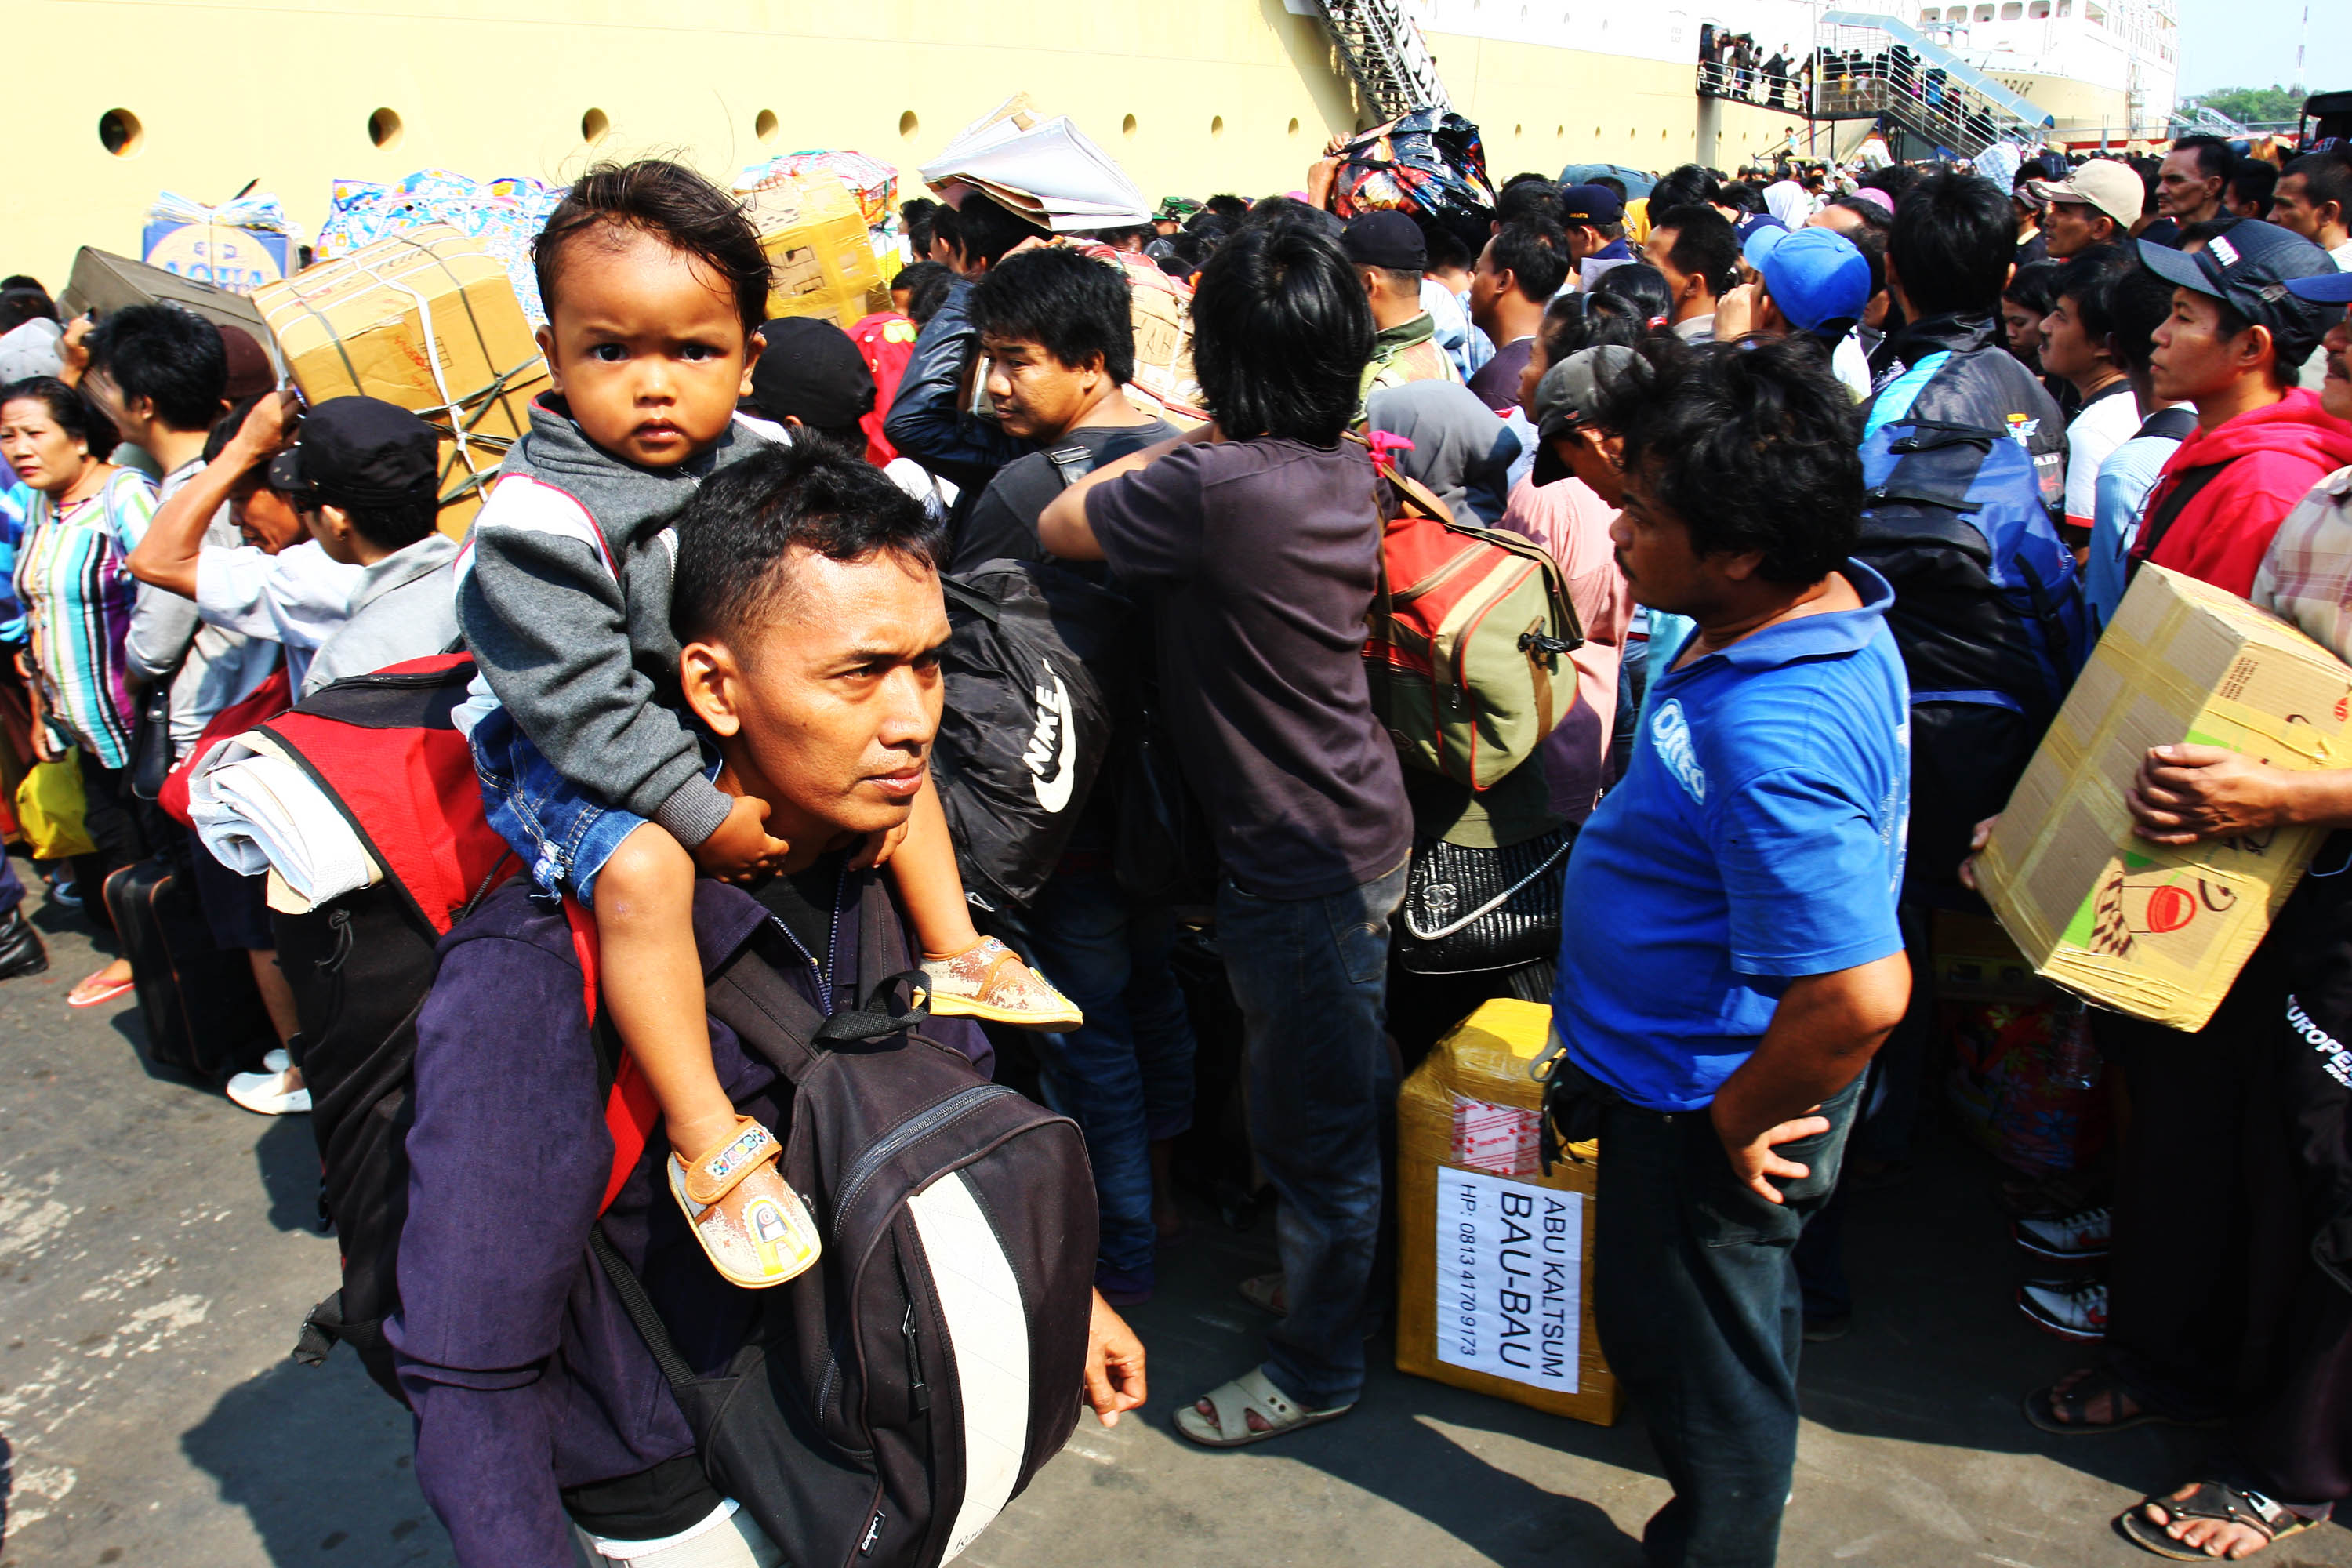 Thousands of people queueing at Tanjung Priok harbor, Jakarta, By: Iwan- Denaya Images